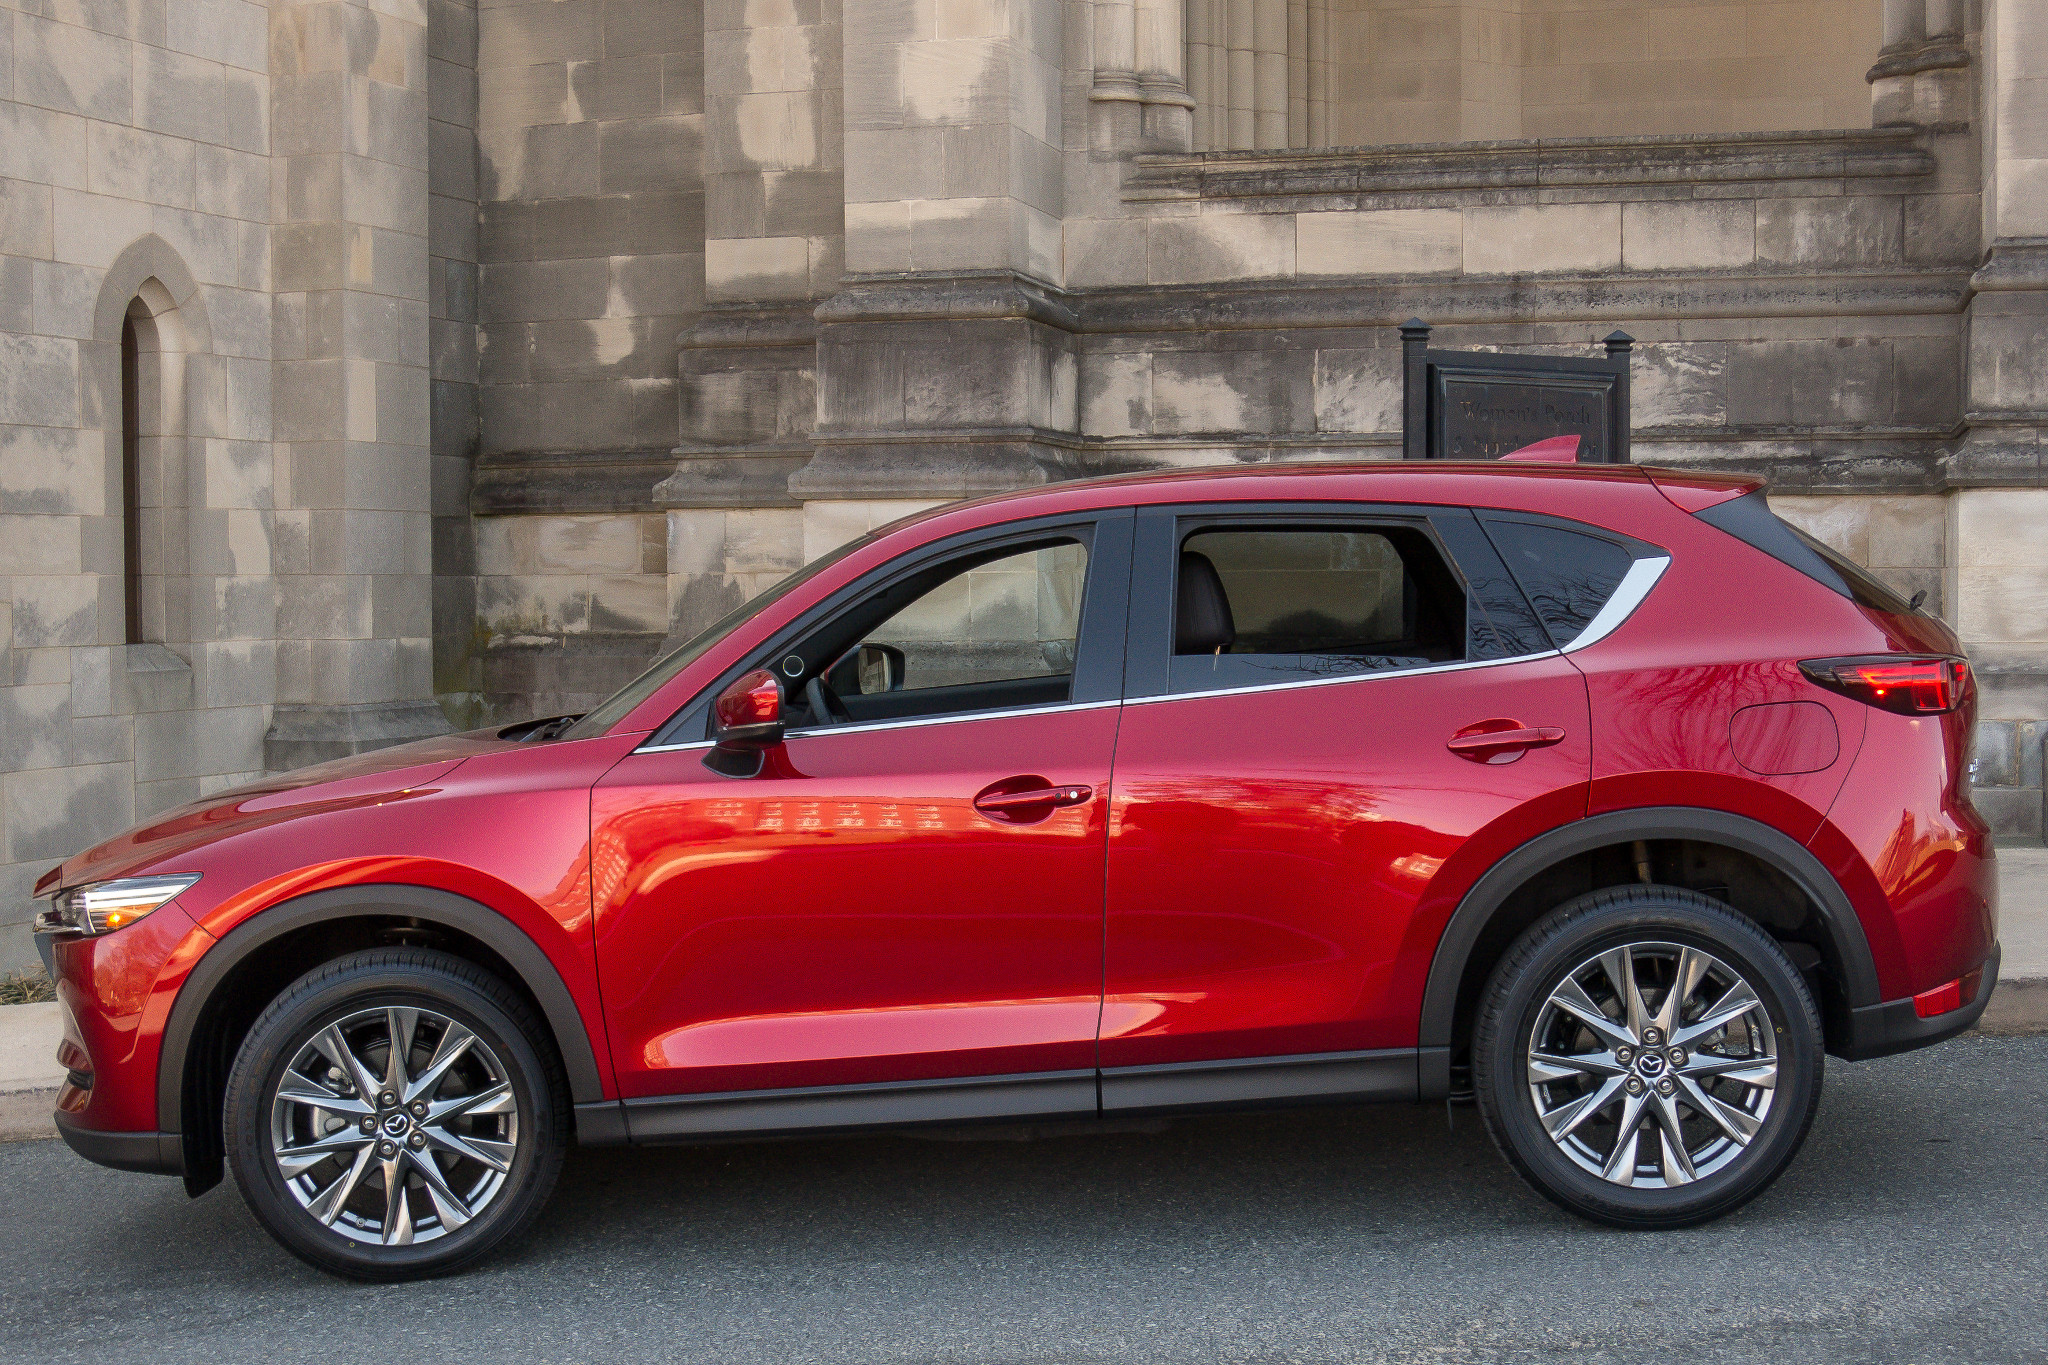 02-mazda-cx-5-2019-exterior--profile--red.jpg